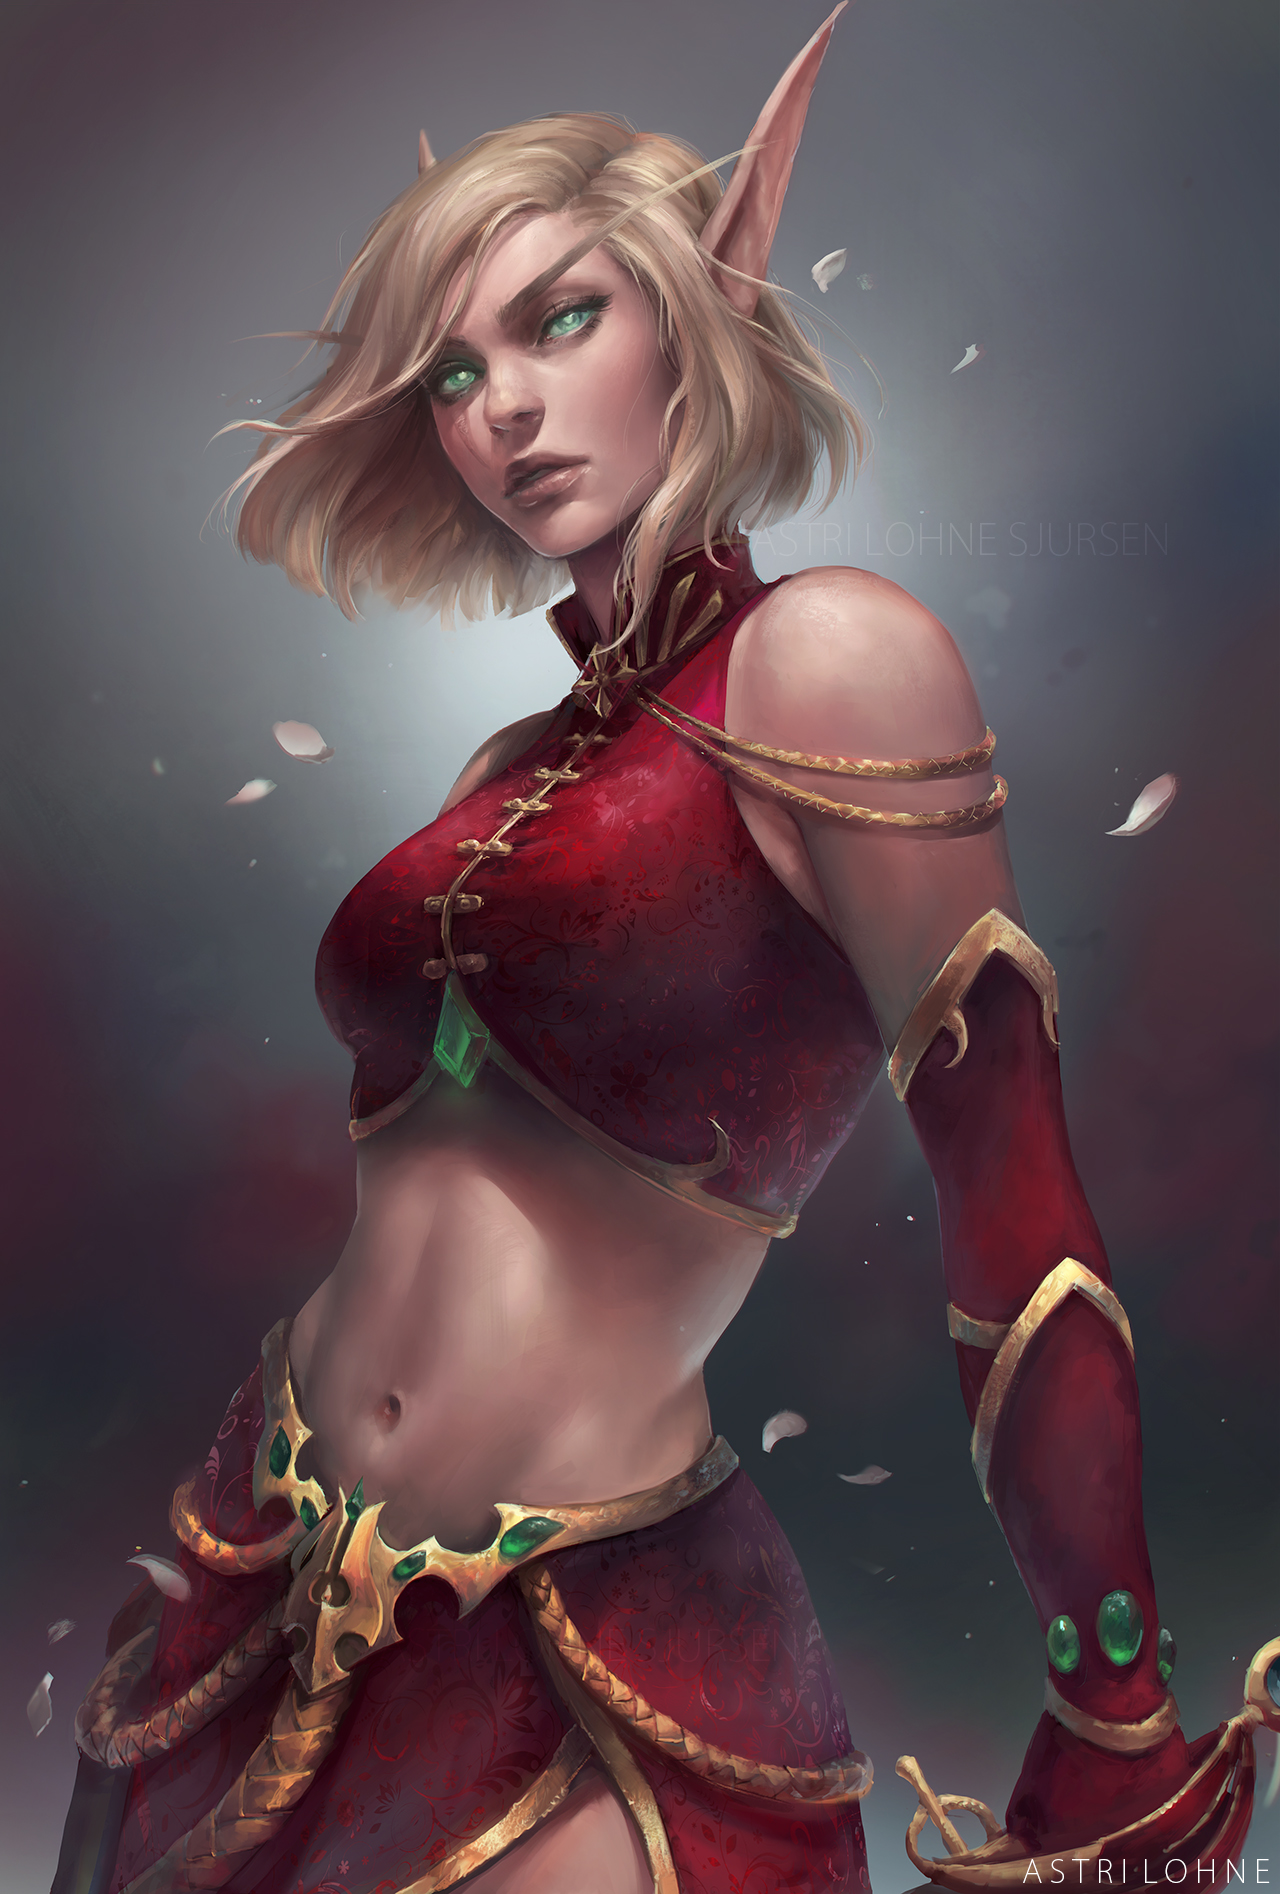 Blood elf lady fucks thumbs